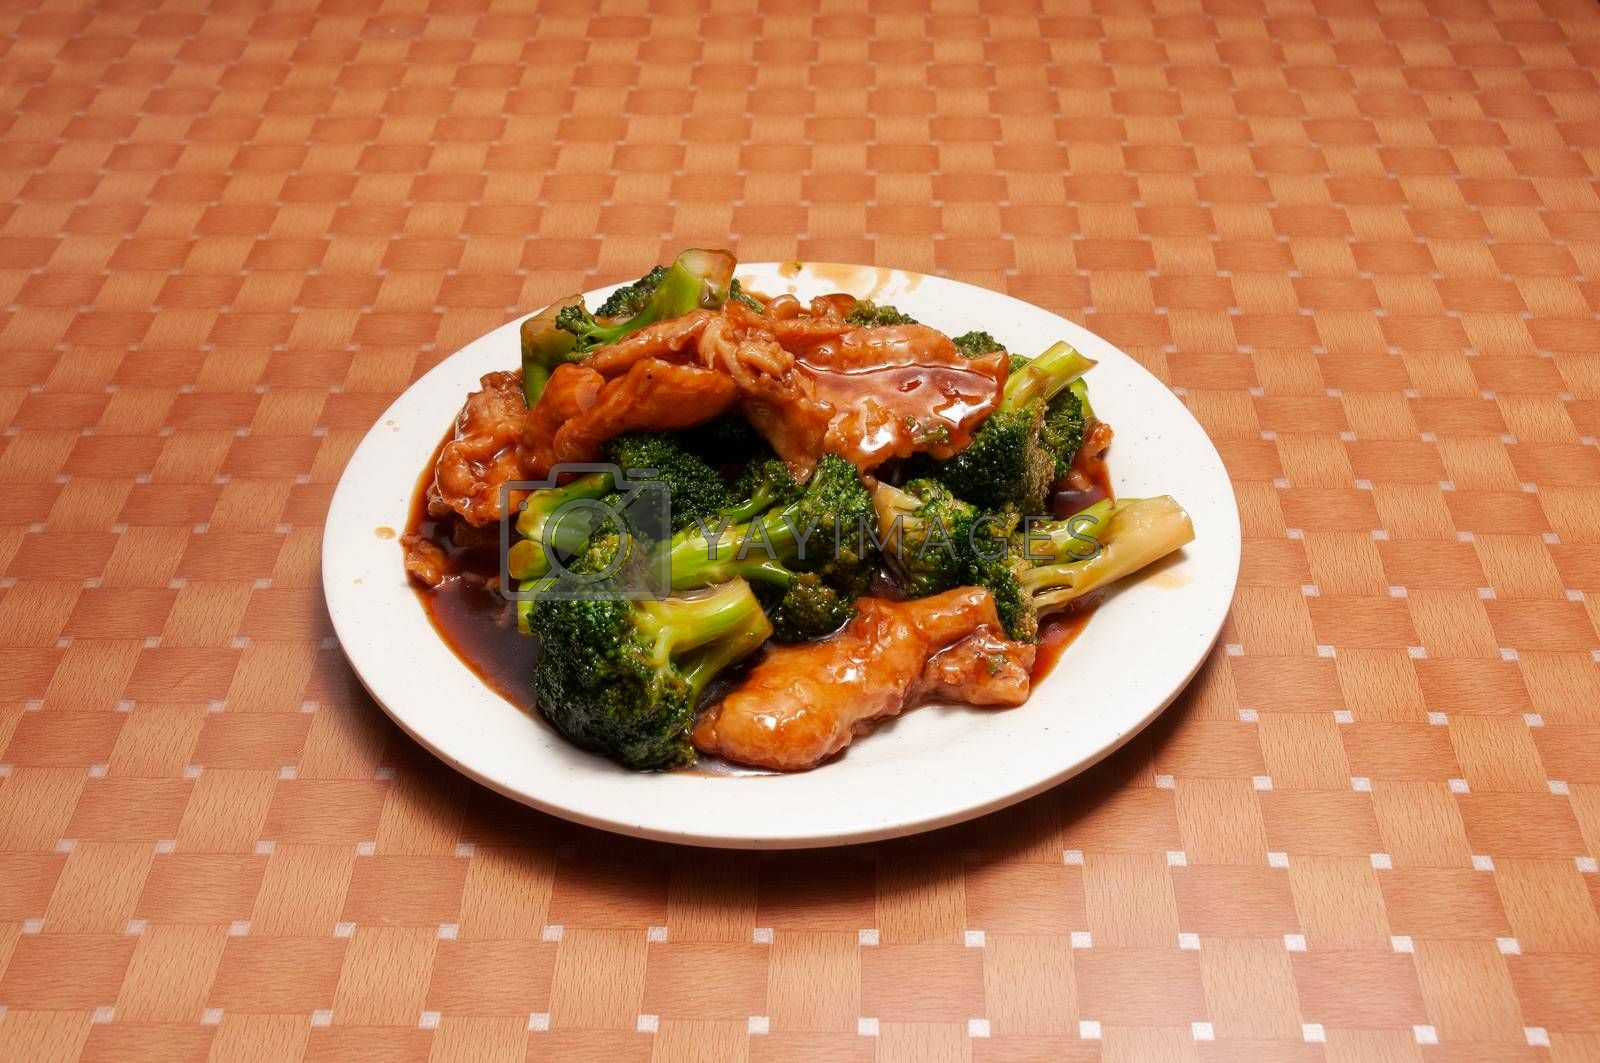 Traditional Chinese dish known as sweet and sour chicken with broccoli